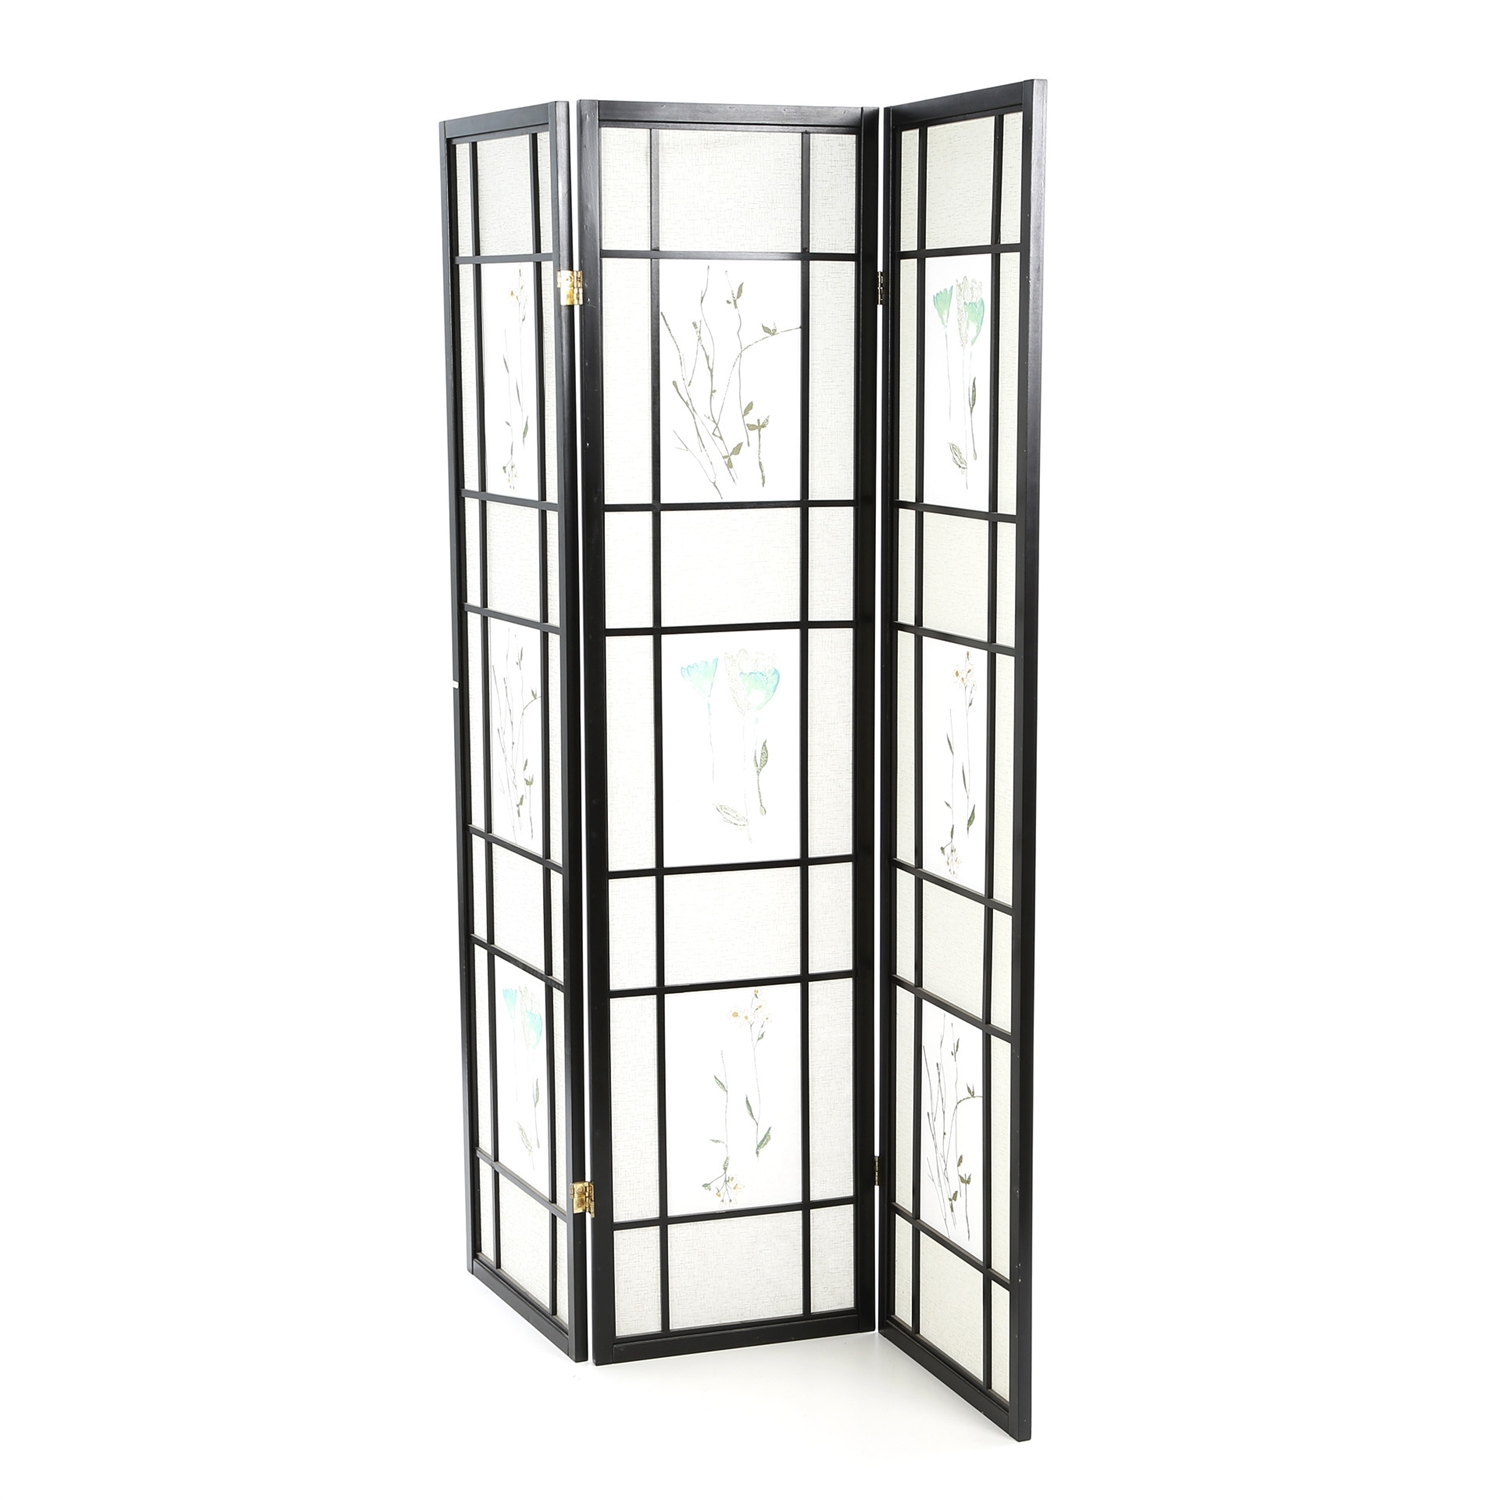 Black 3-Panel Room Divider Shoji Screen with Asian Floral Design, SBRDE88431 :  This Black 3-Panel Room Divider Shoji Screen with Asian Floral Design would be a great addition to your home. It has an Asian style and a solid wood frame construction. Chinese flower painting design; Folds easily for storage; Product Type: Folding; Style: Asian/Shoji; Theme: Asian; Color: 1: Black; Color: 2: Brown;  Country of Manufacture: Taiwan, Province of China.